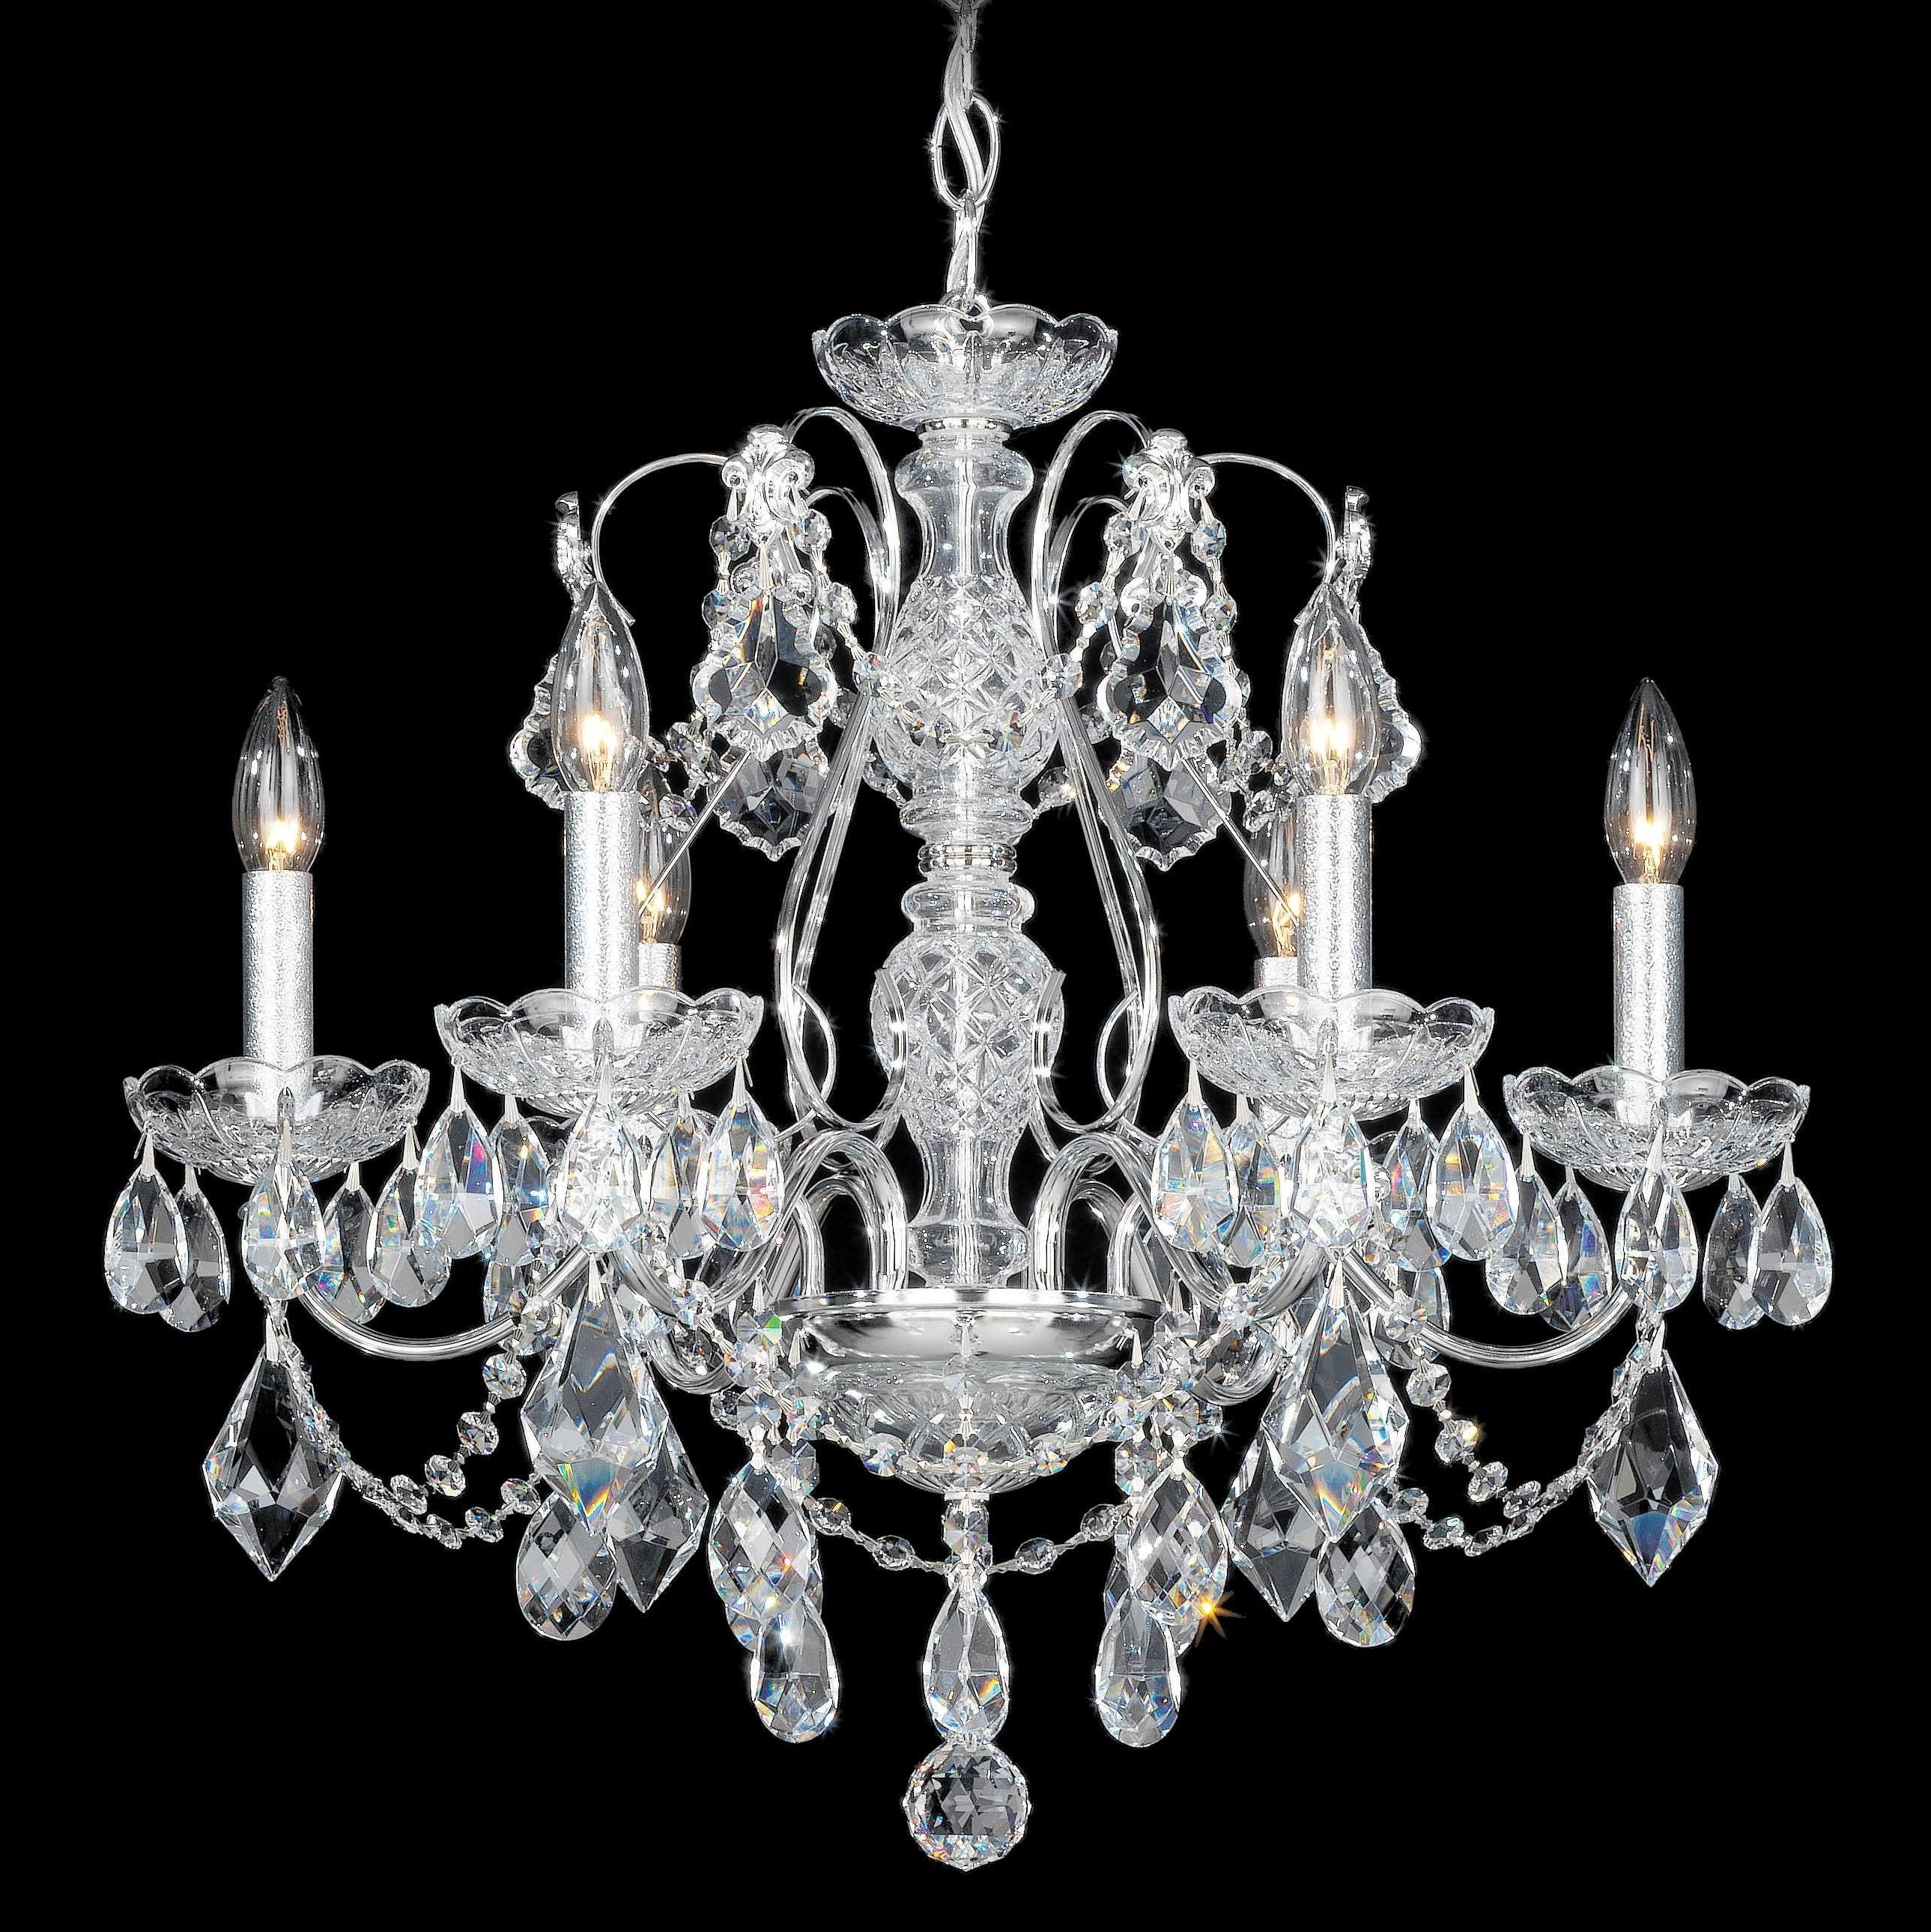 Lead Crystal Chandeliers With Popular Chandelier : Chandelier Beads Crystal Lamps Antique Crystal (View 4 of 20)